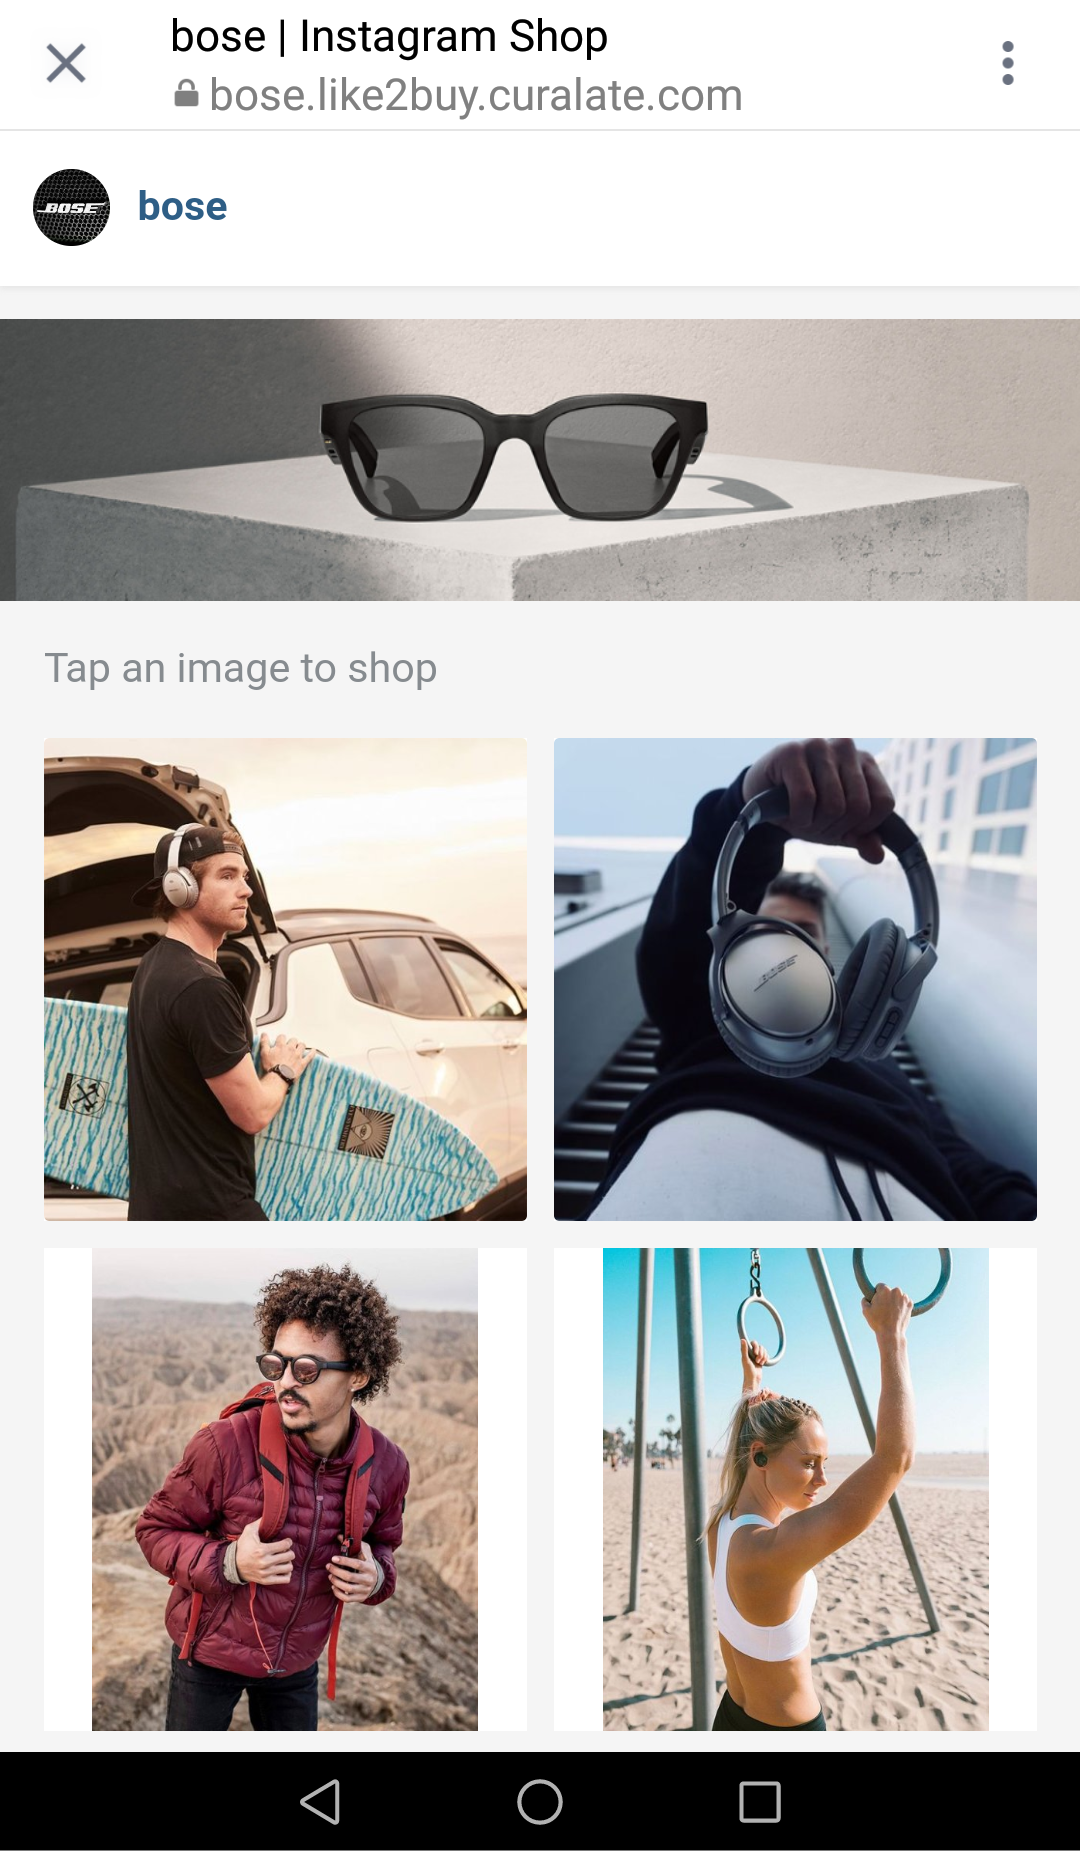 Curalate makes it easier for users to buy directly from Instagram